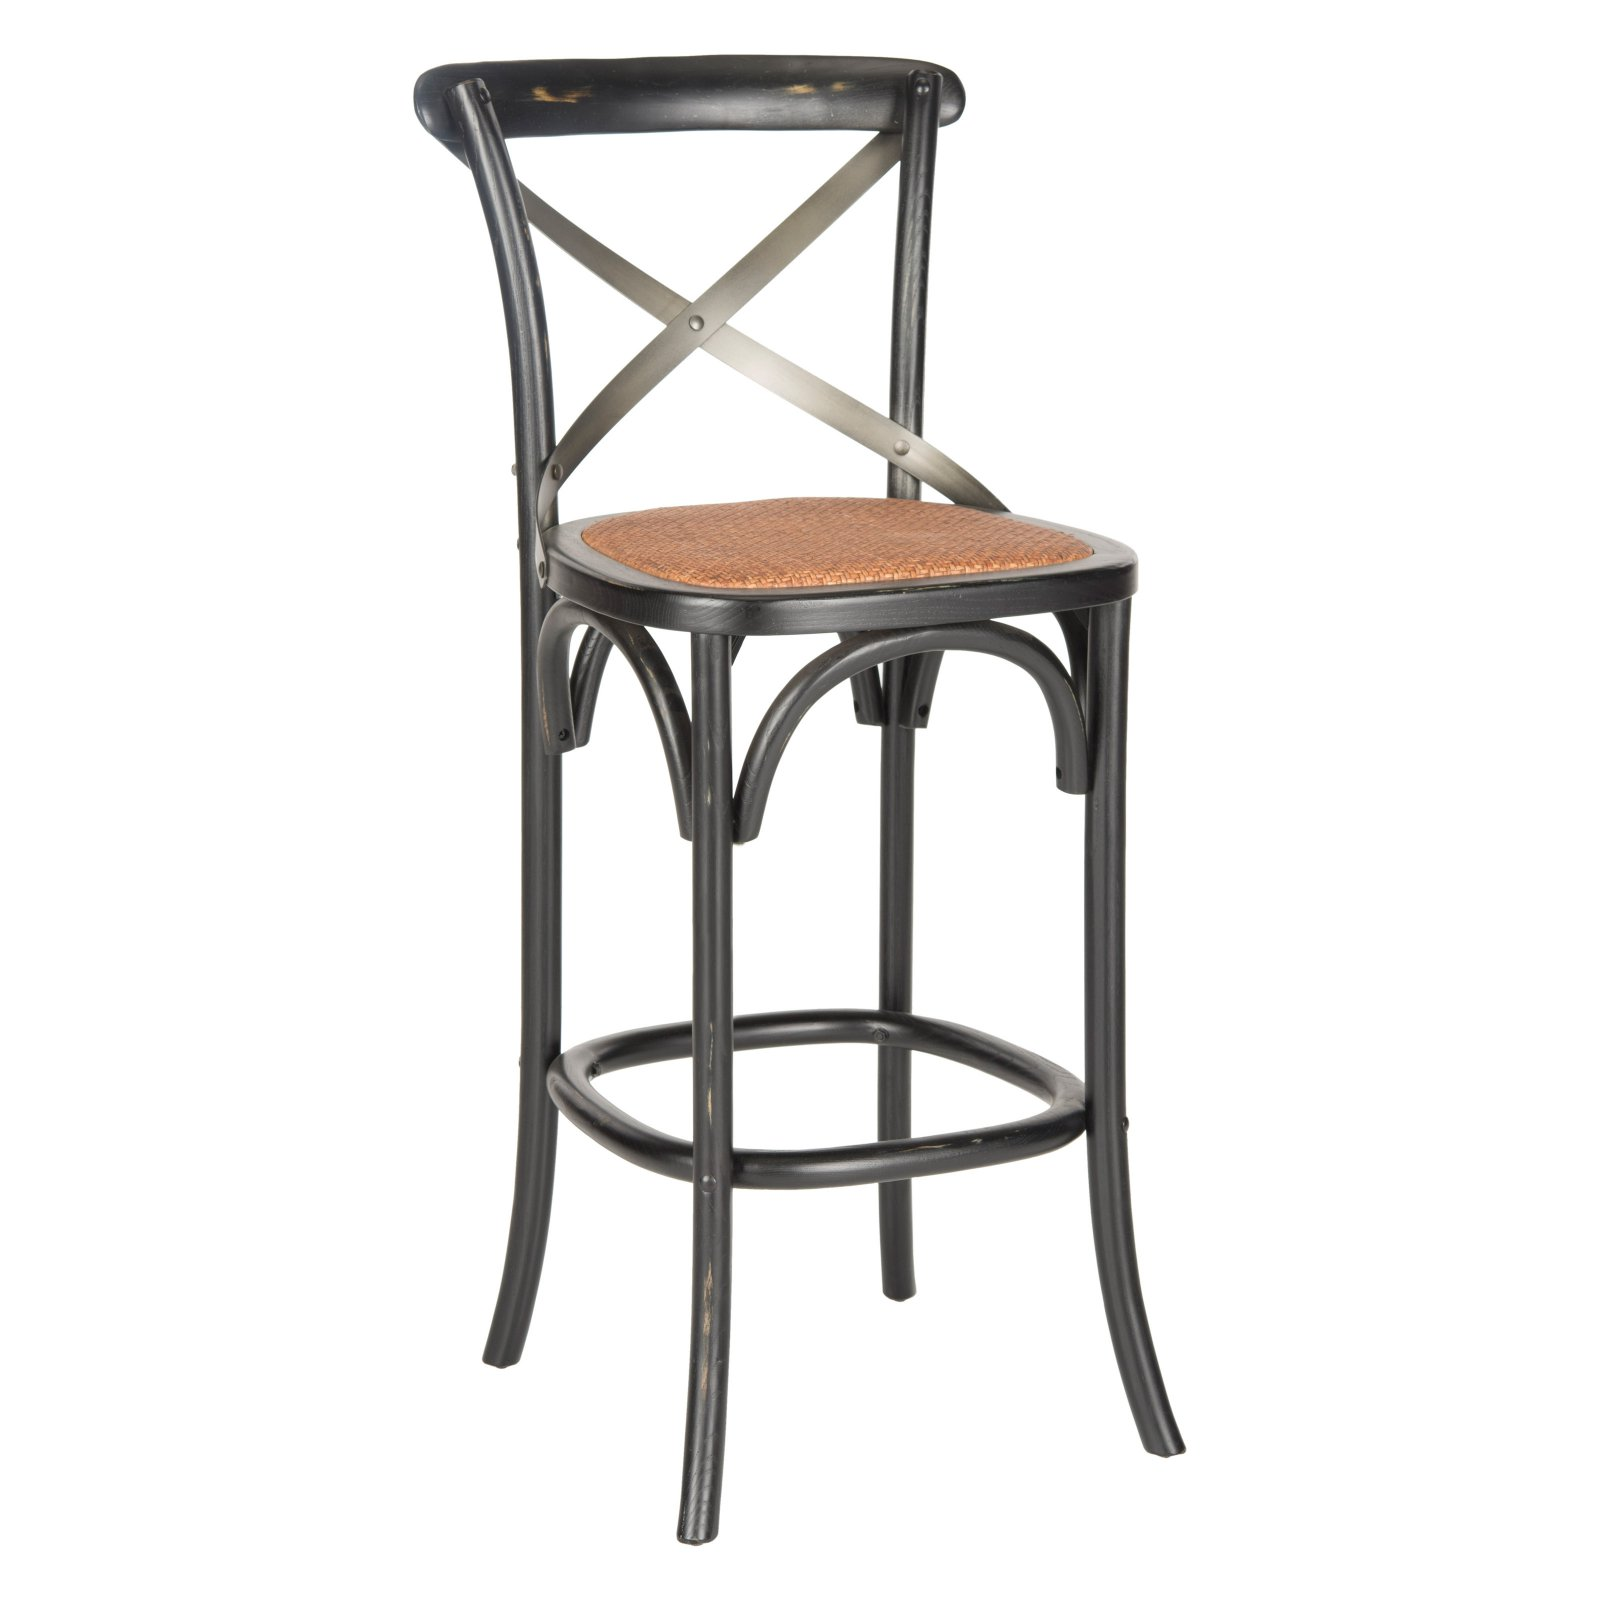 Safavieh Eleanor 29.5 in. X-Back Bar Stool